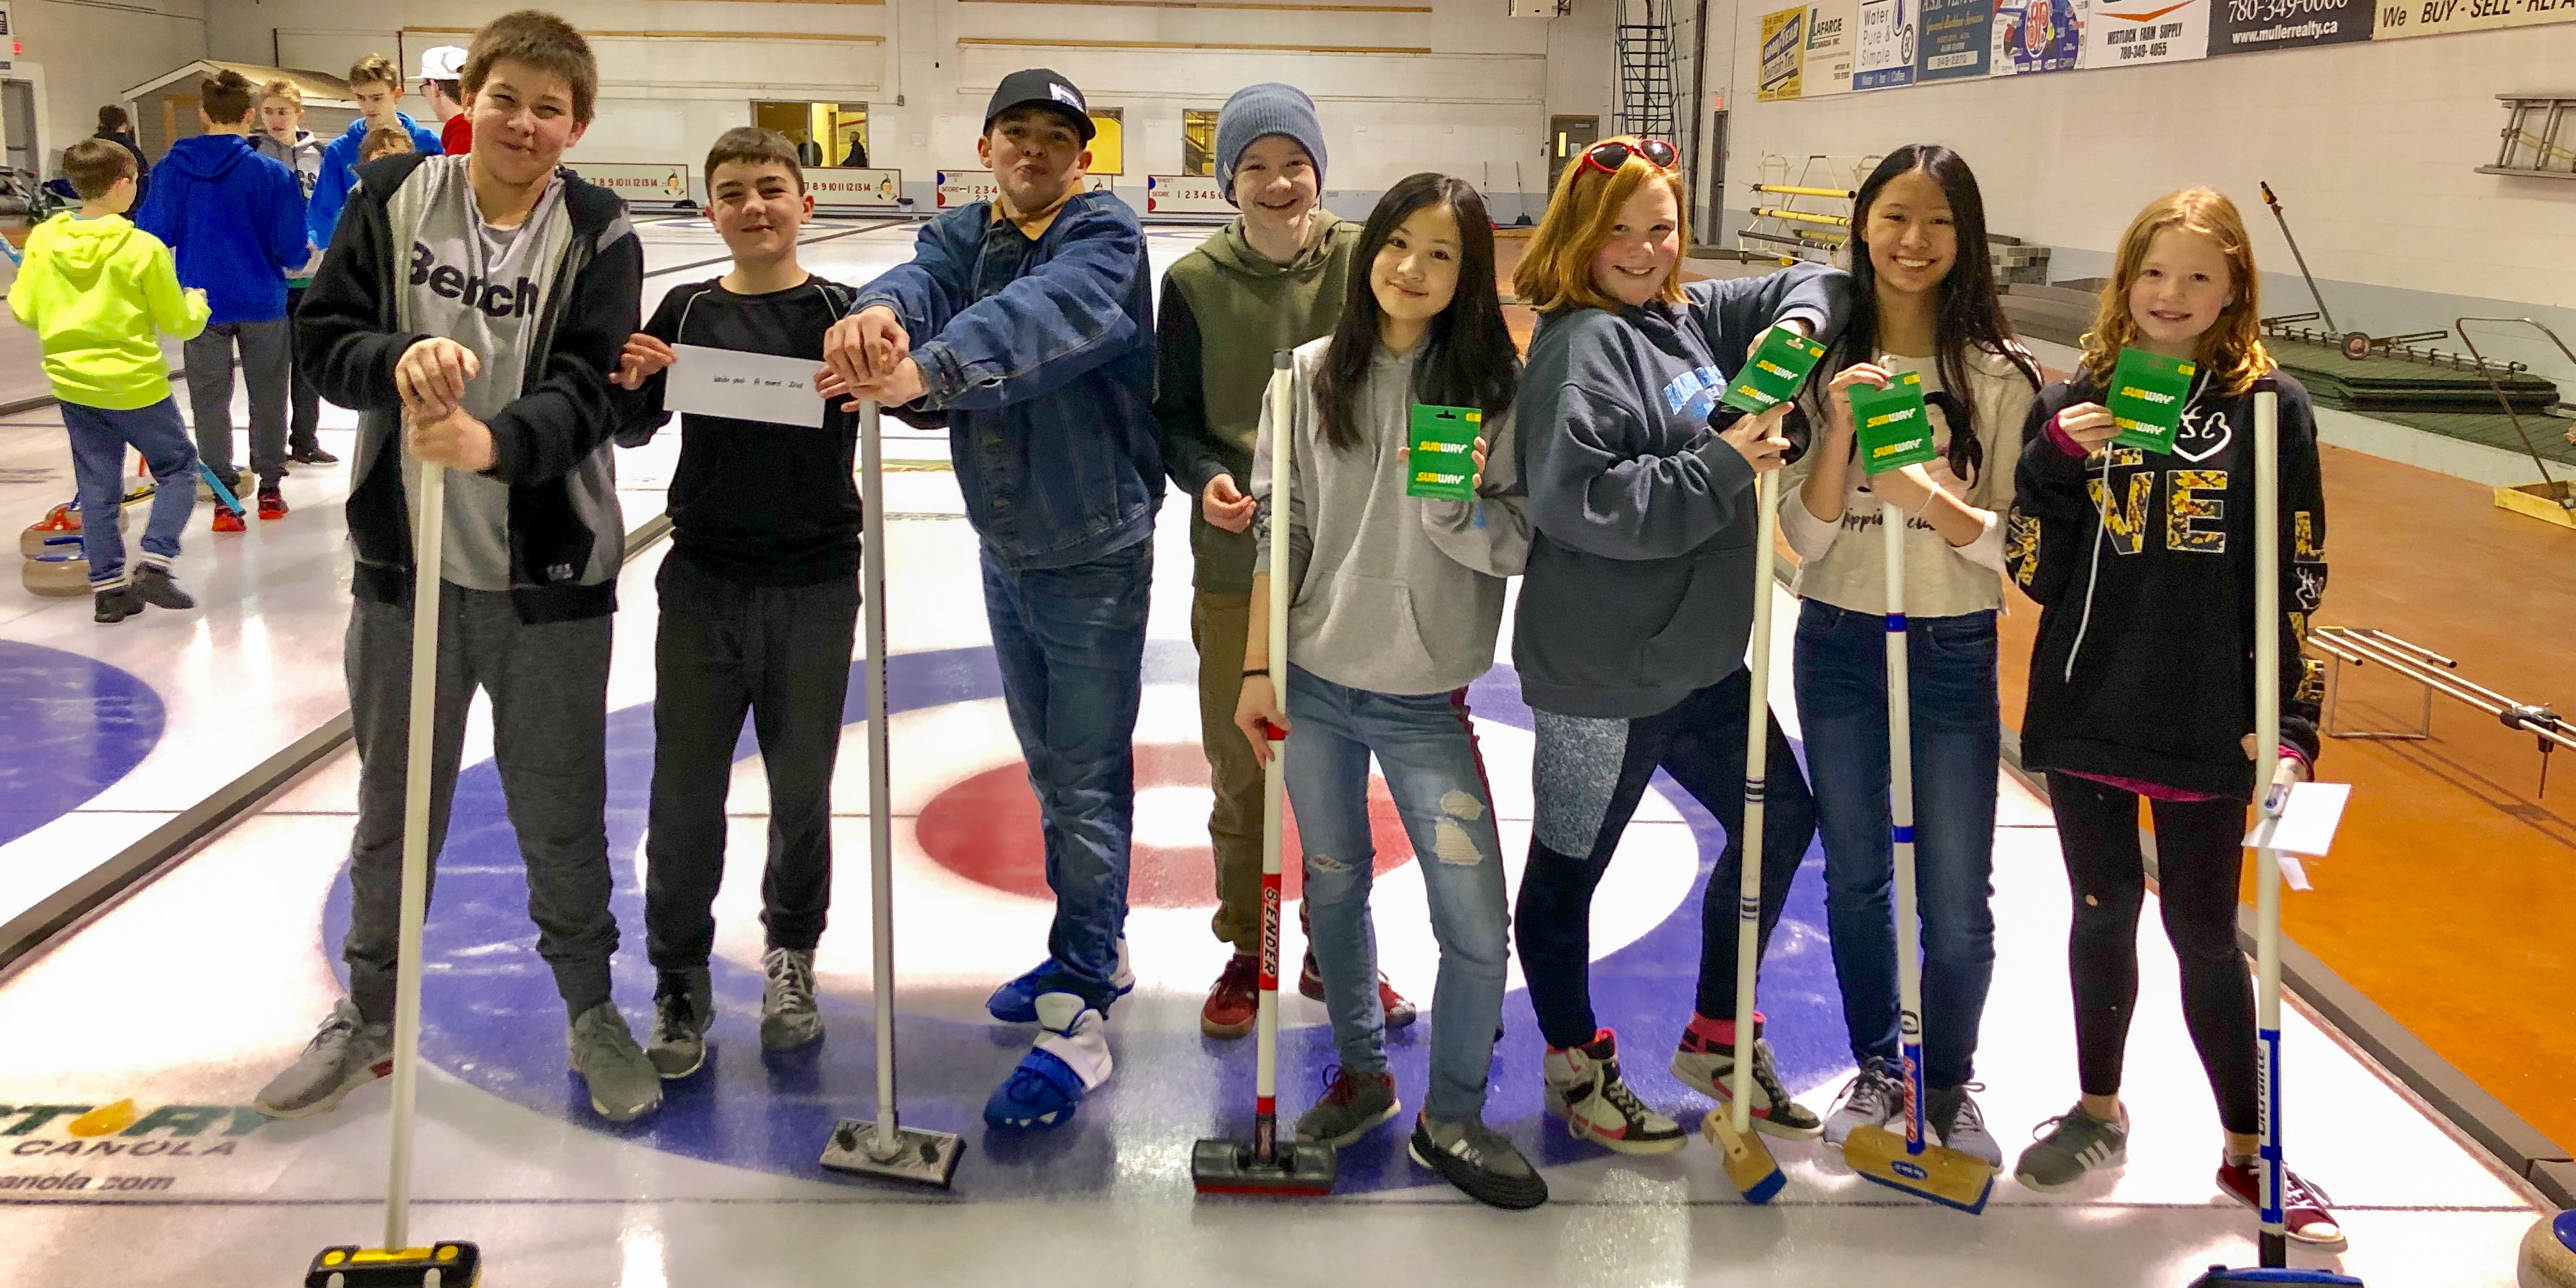 Team Xu Takes 1st; Team Humber Takes 2nd at March 18 Curling Bonspiel in Westlock